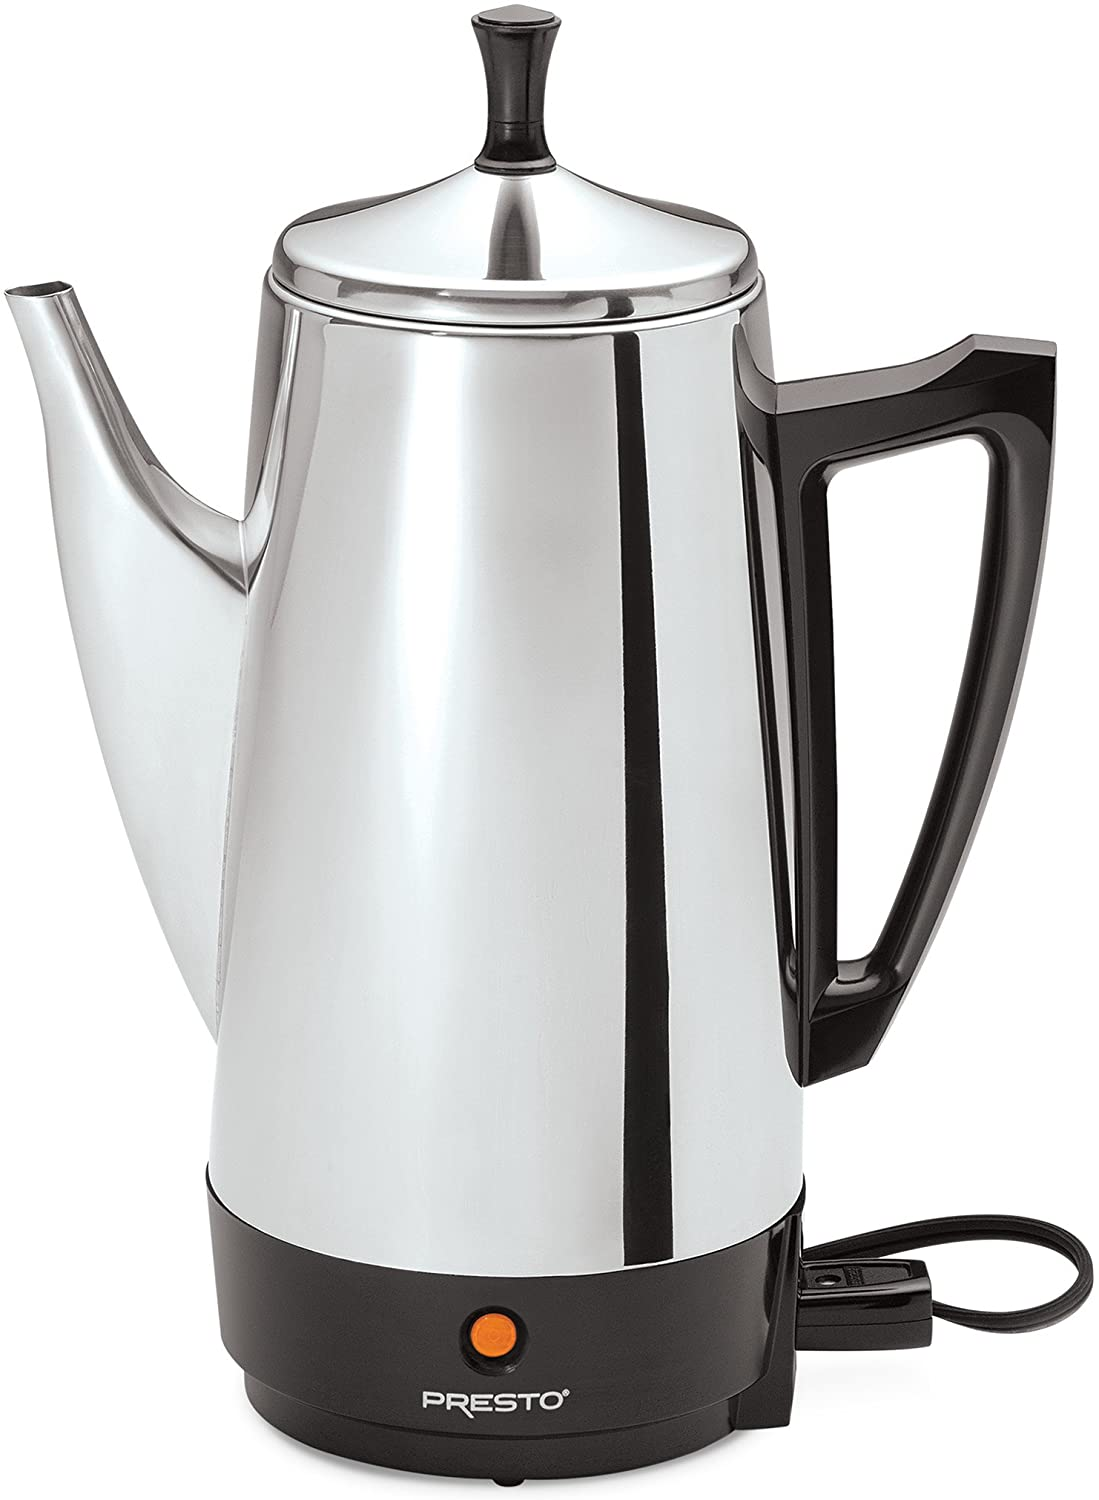 Presto 02811 Stainless Steel Coffee Percolator, 12-Cup